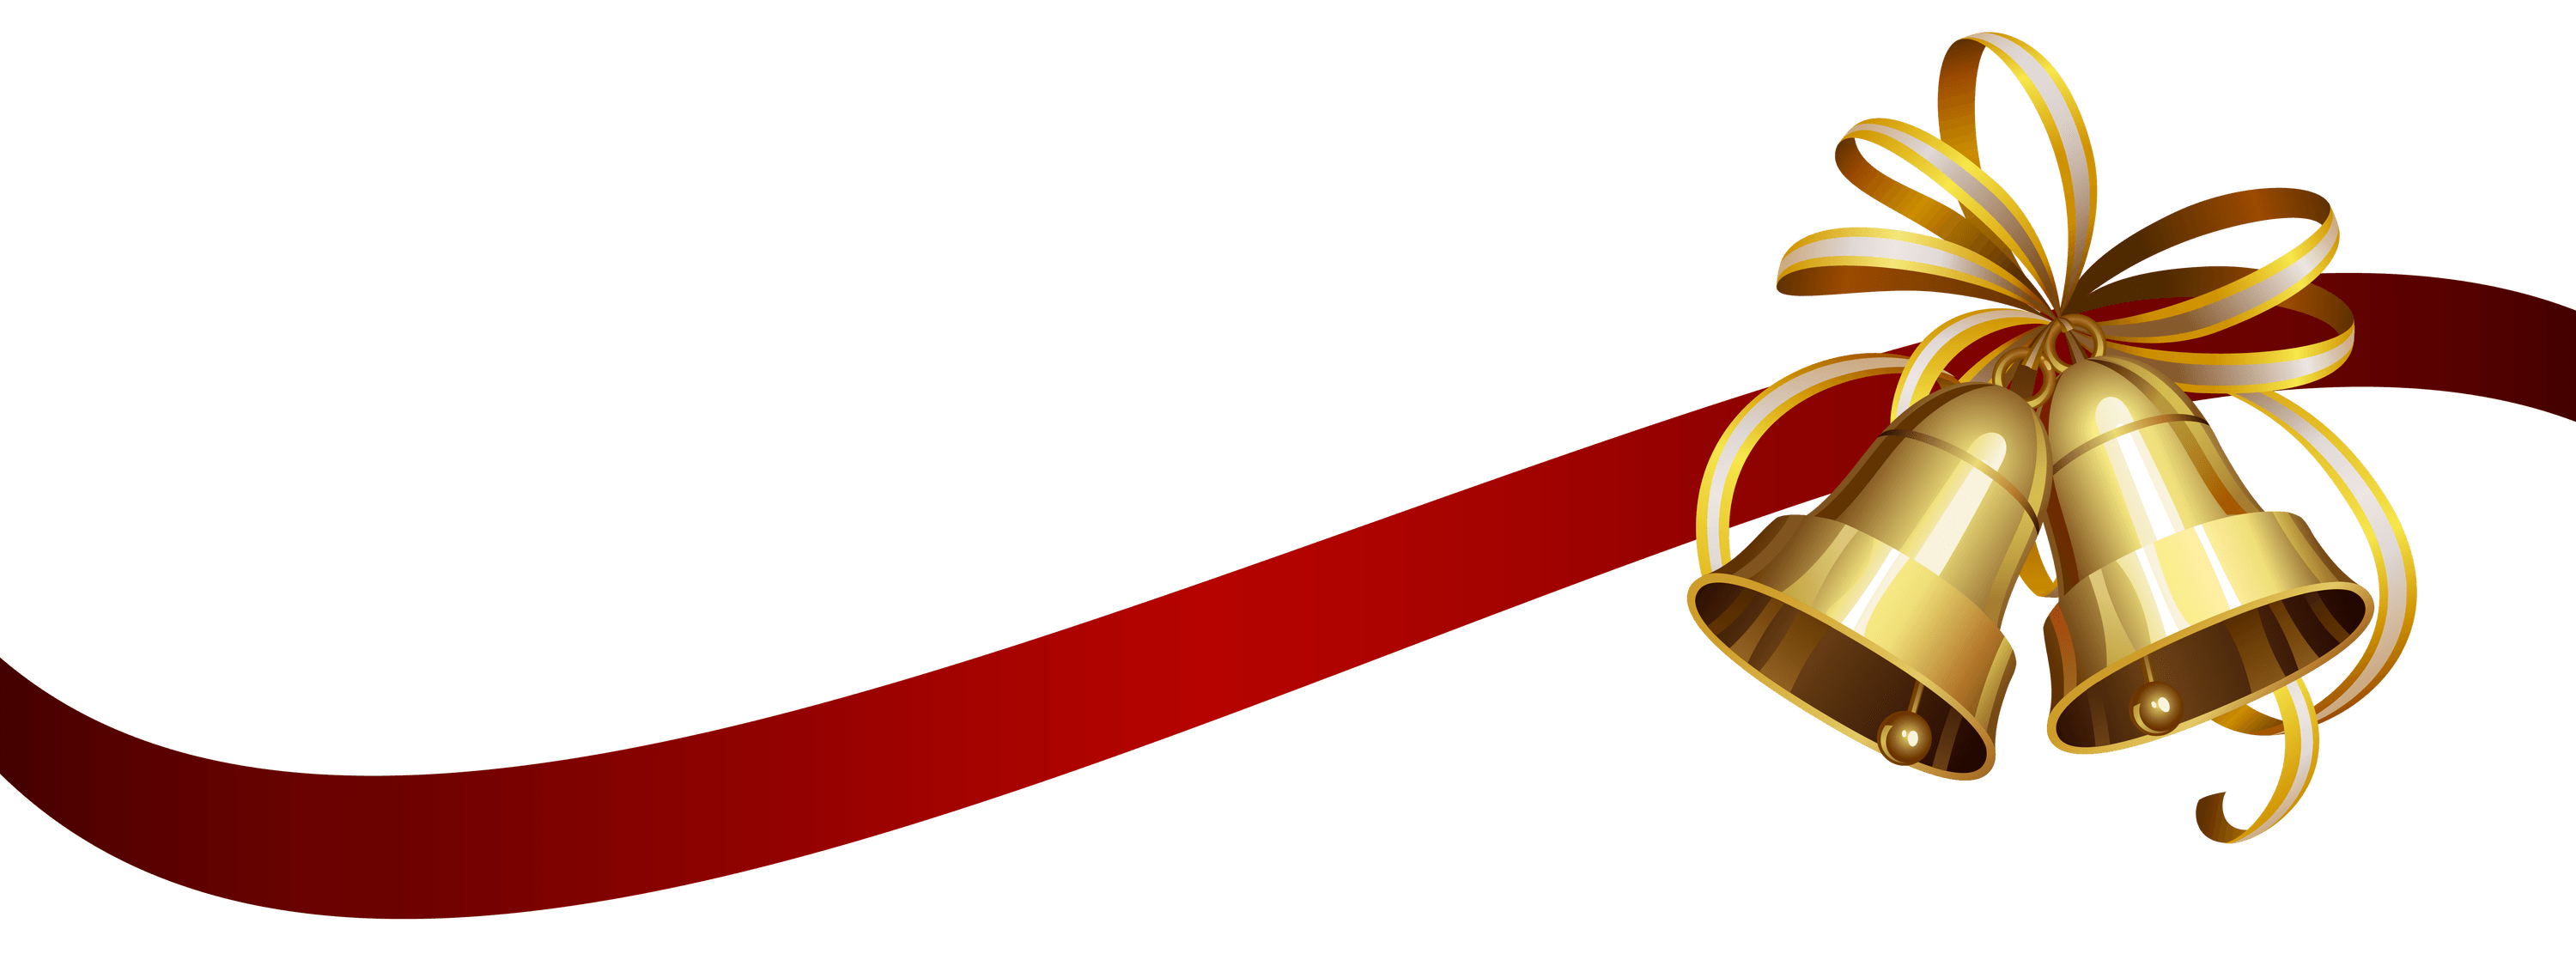 Christmas png transparent. Ribbon and bells stickpng